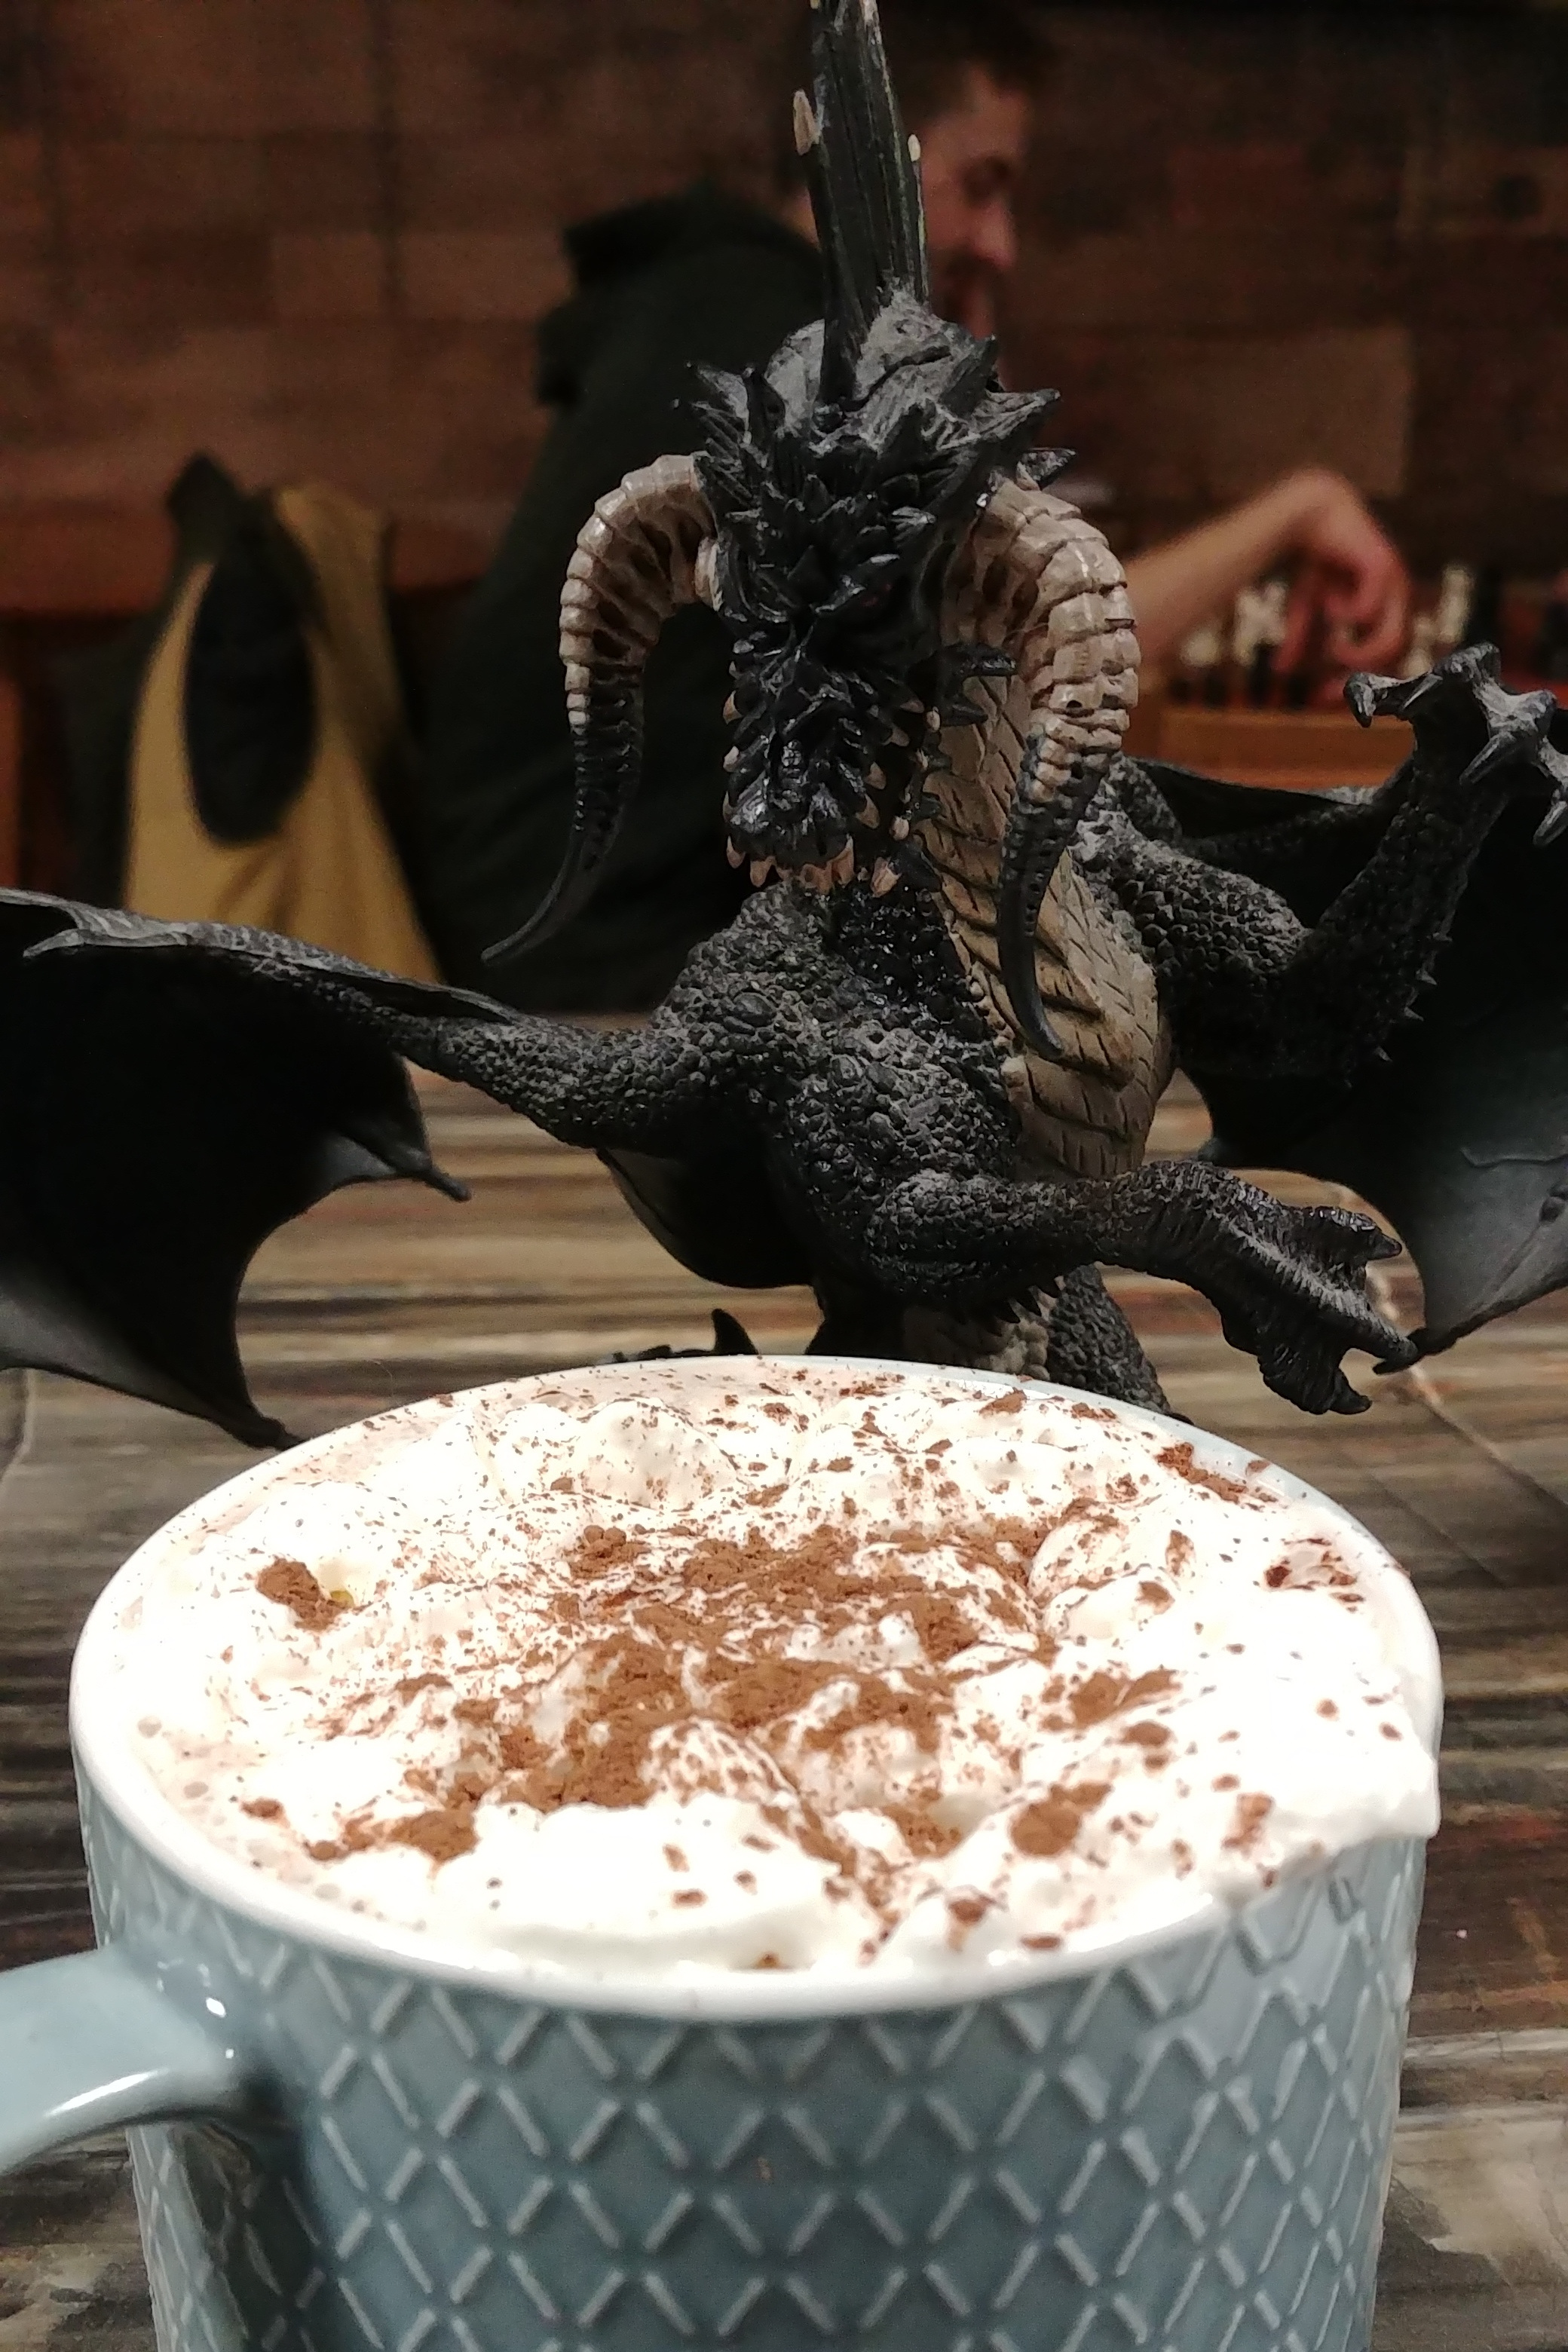 This dragon was very grateful, despite his natural evil, to drink a Guild patented Misty Mountain.